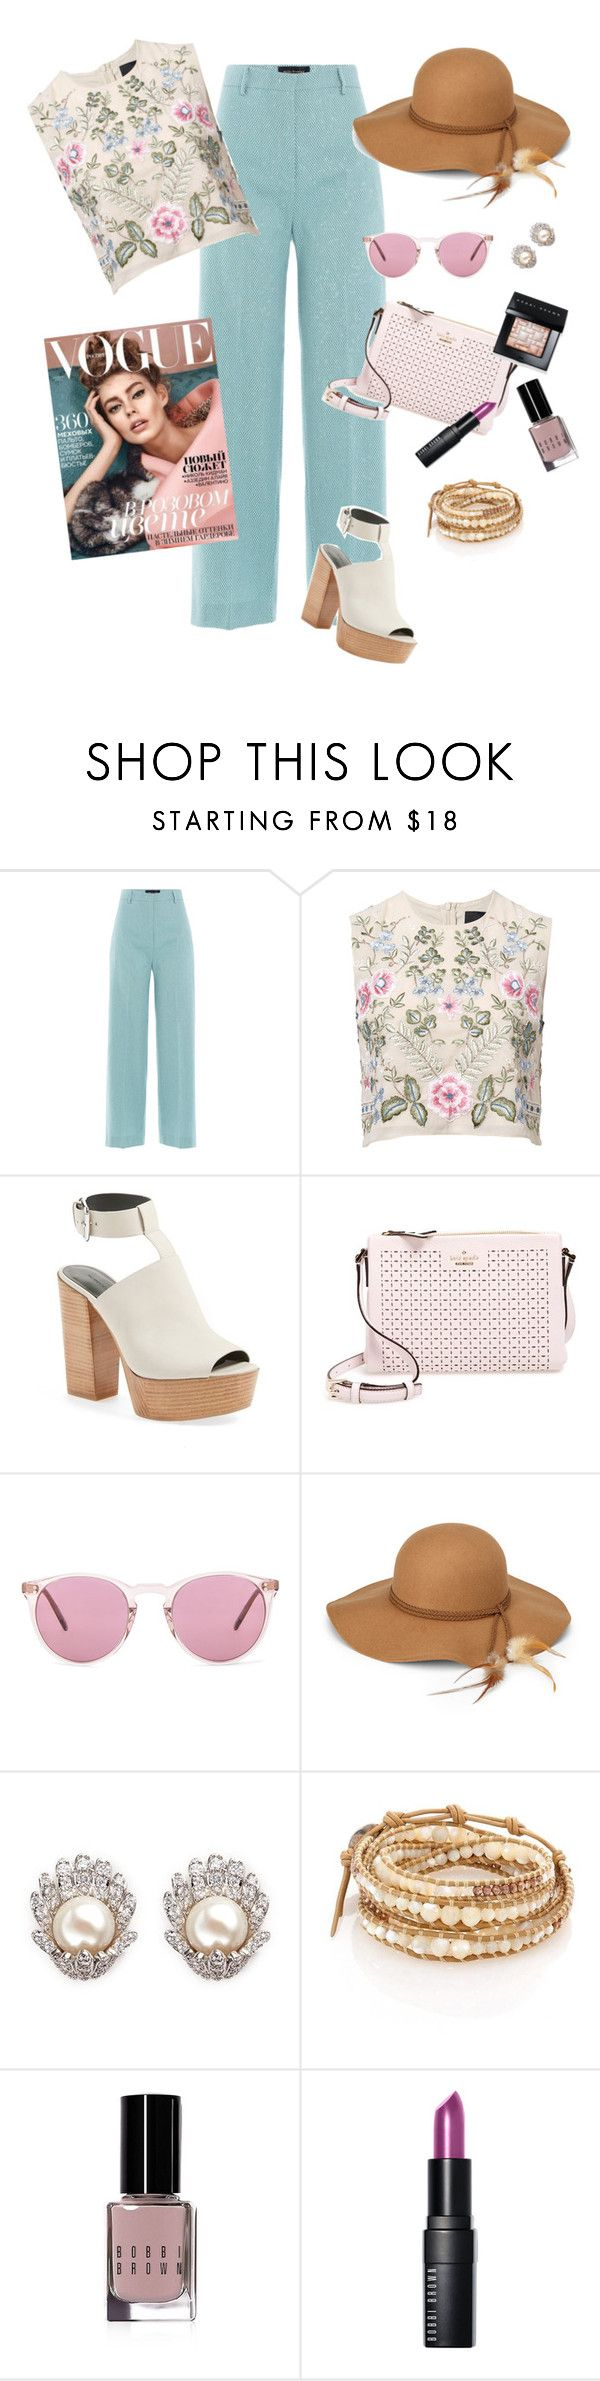 """How To Style Wide Leg Trousers"" by fashion-mama-aquarius on Polyvore featuring Piazza Sempione, Needle & Thread, Rebecca Minkoff, Kate Spade, Oliver Peoples, CZ by Kenneth Jay Lane, Chan Luu, Bobbi Brown Cosmetics and styleset"